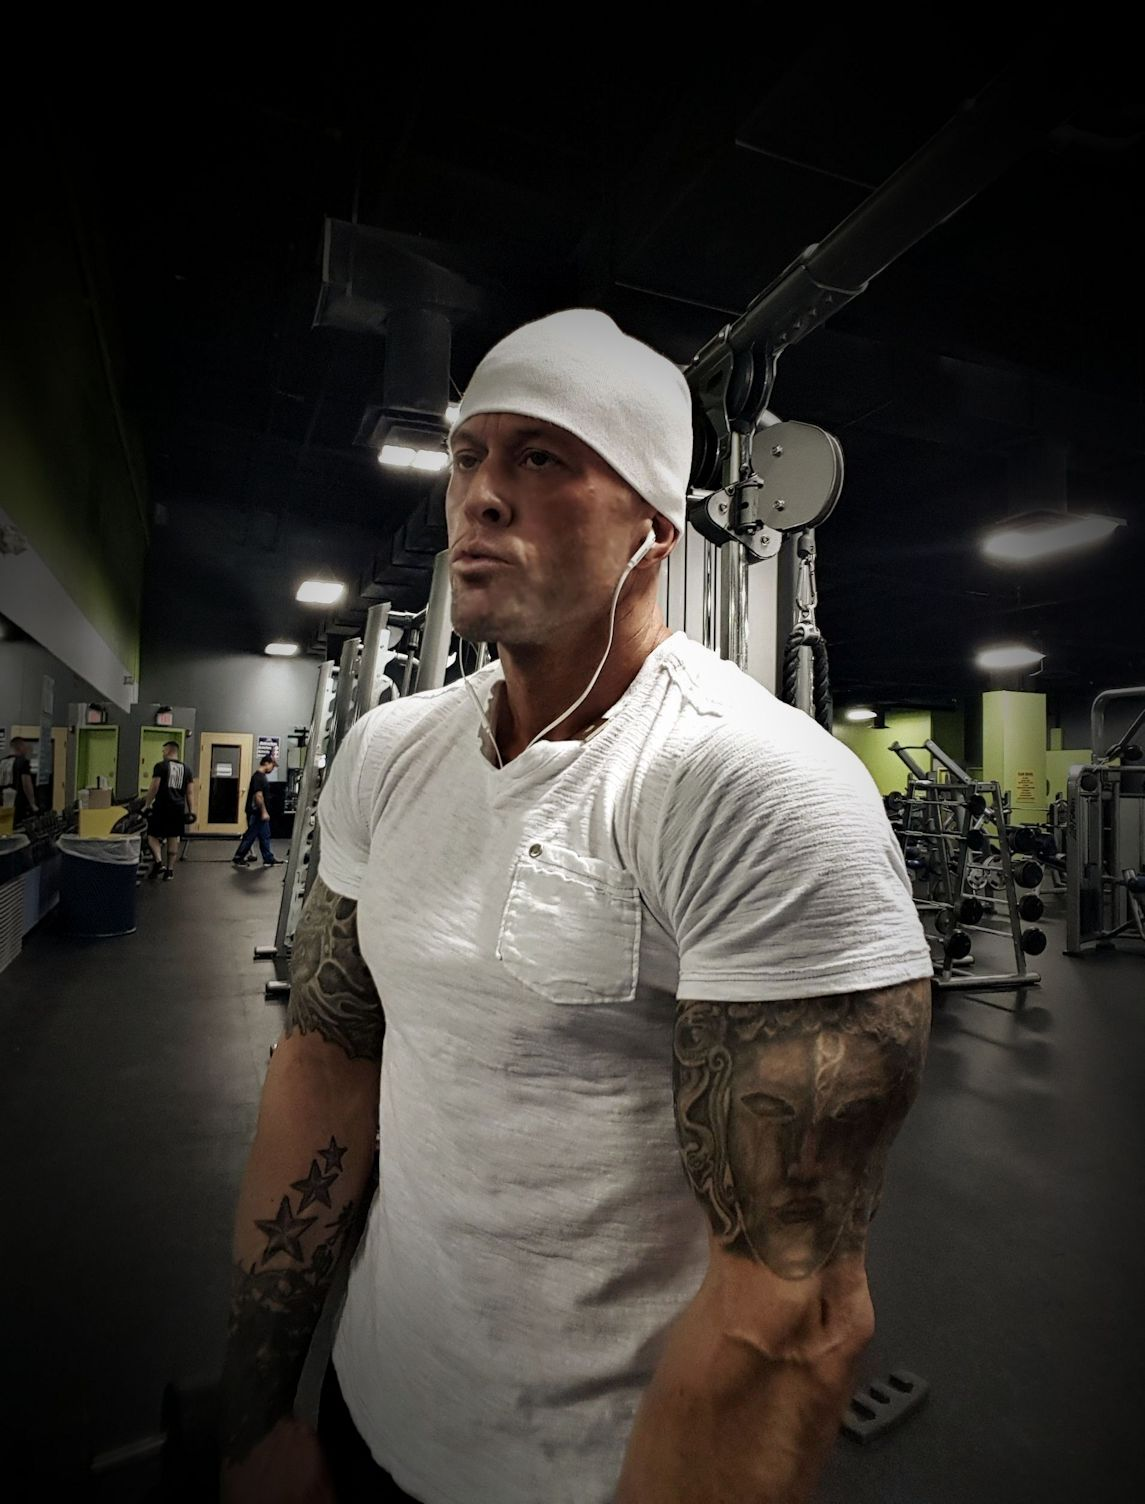 Physique Fitness Cover Model & Actor John Joseph Quinlan Gym Training Soul Cleansing #JohnQuinlan